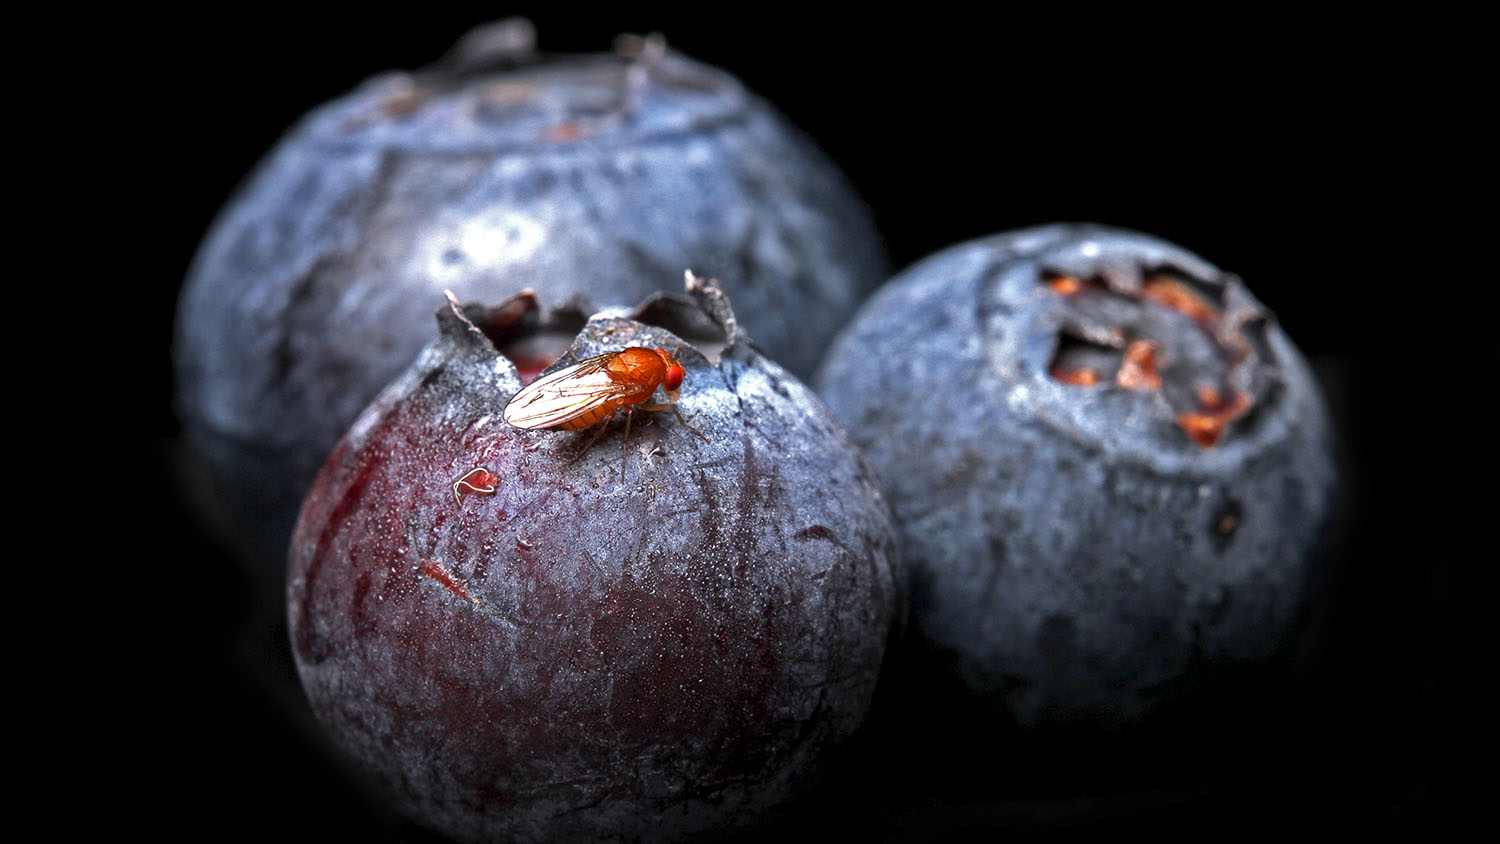 A small, red fly on a blueberry, against a black background.